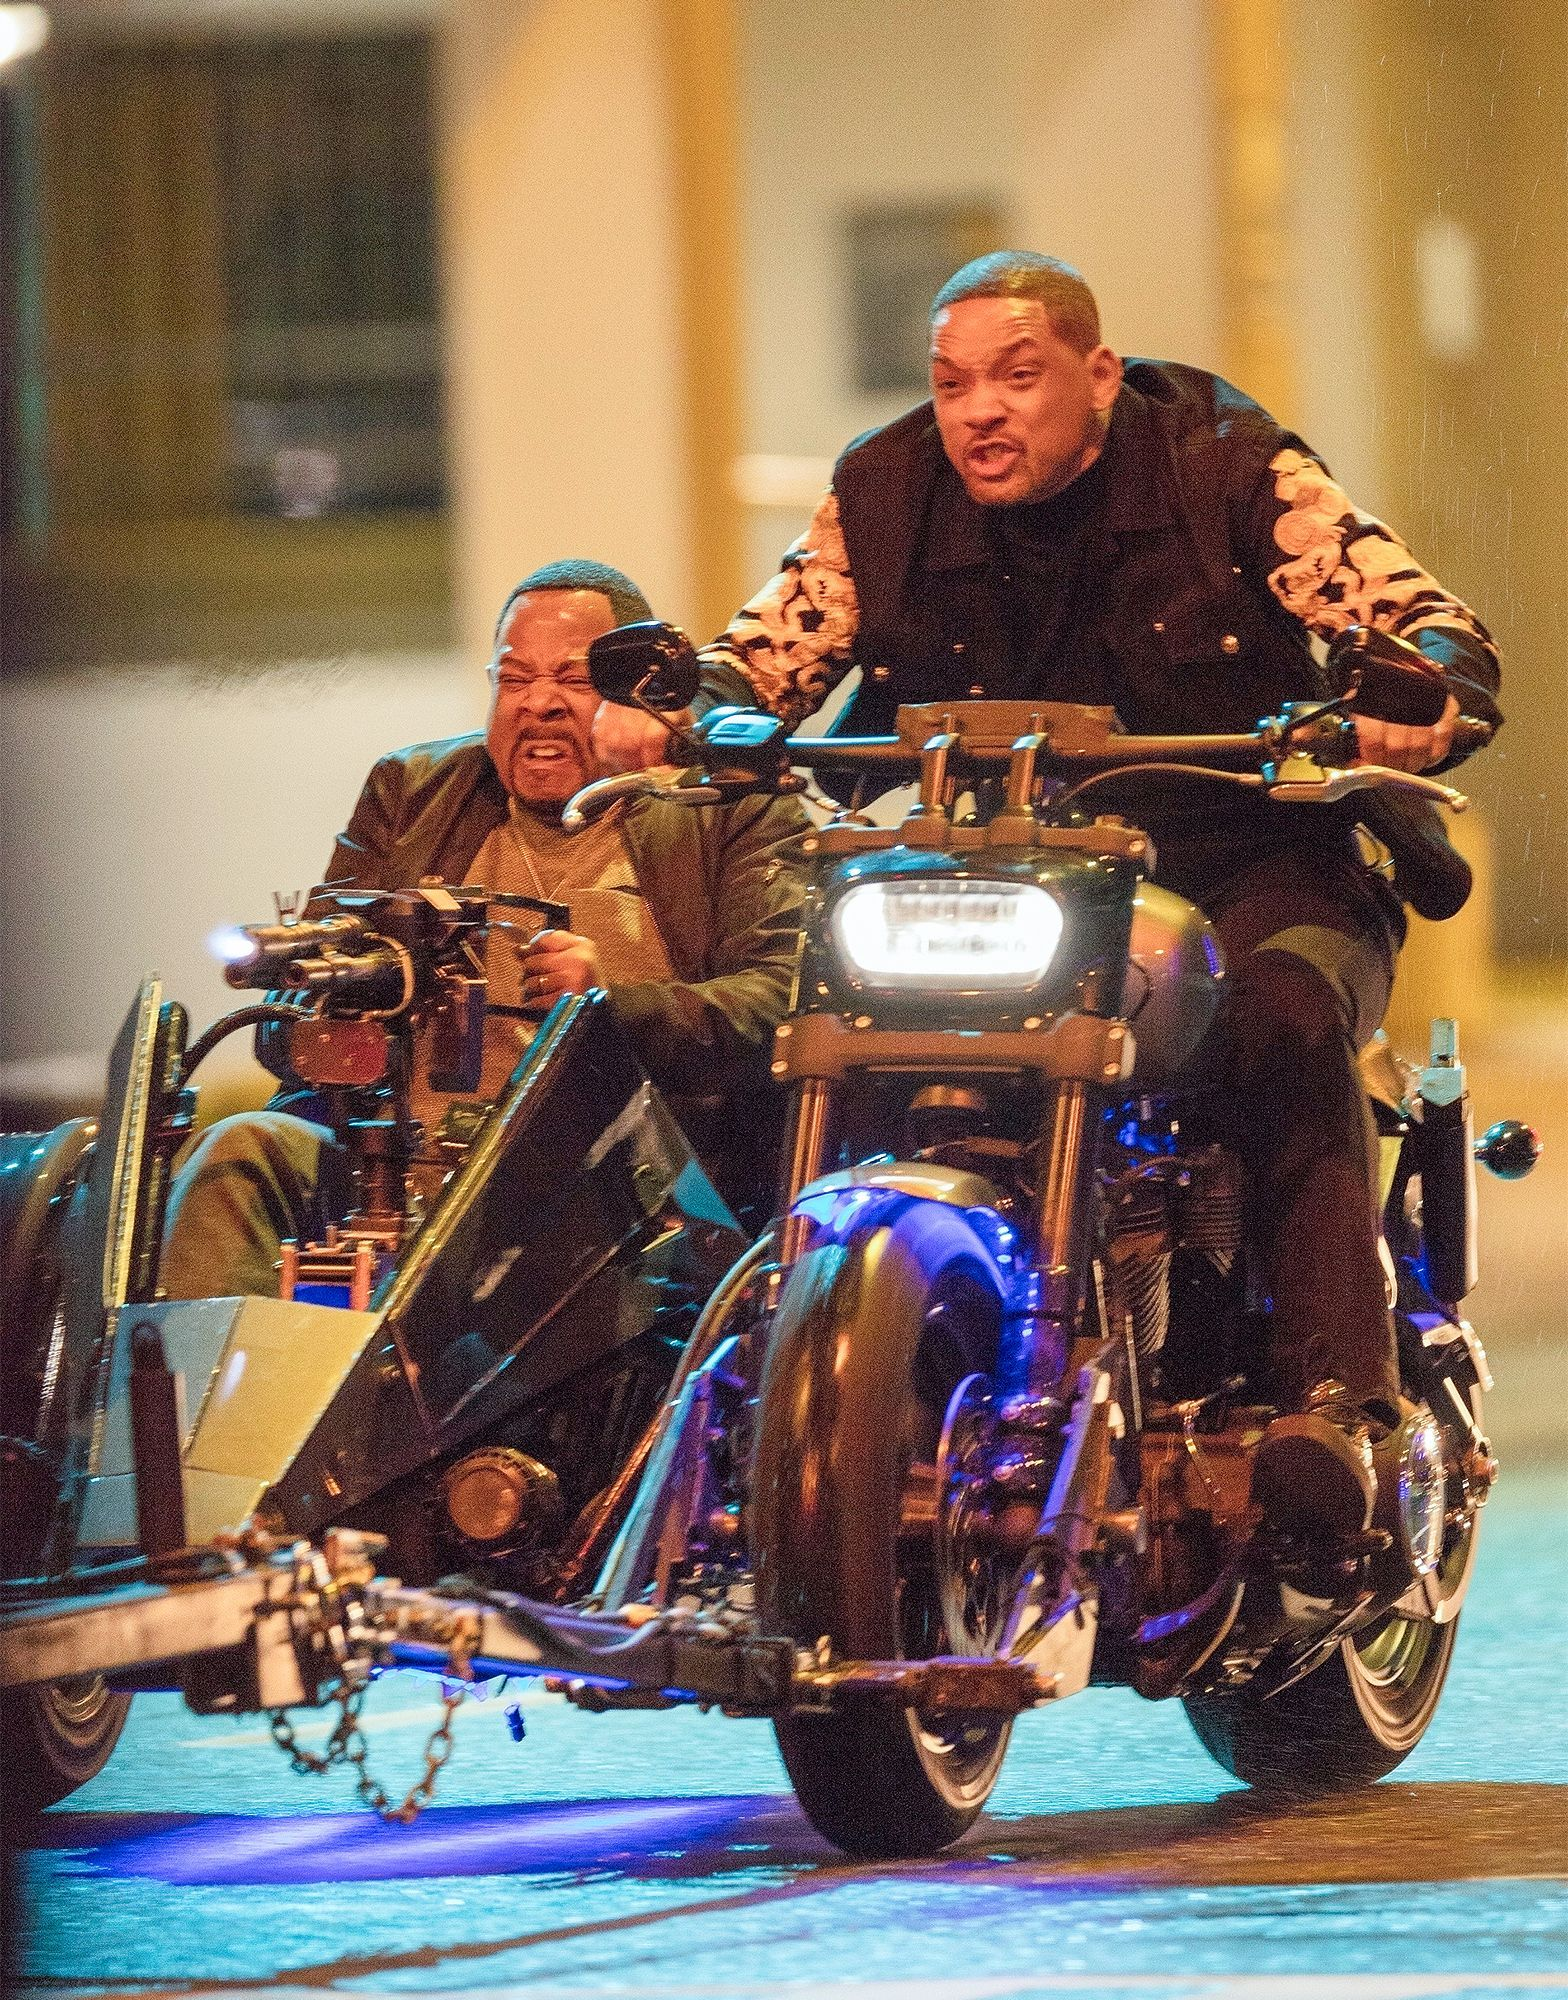 Will Smith And Martin Lawrence Are Back In Action And On Motorcycles In Em Bad Boys For Life Em Bad Boys Movie Best Friend Pictures Will Smith Bad Boys